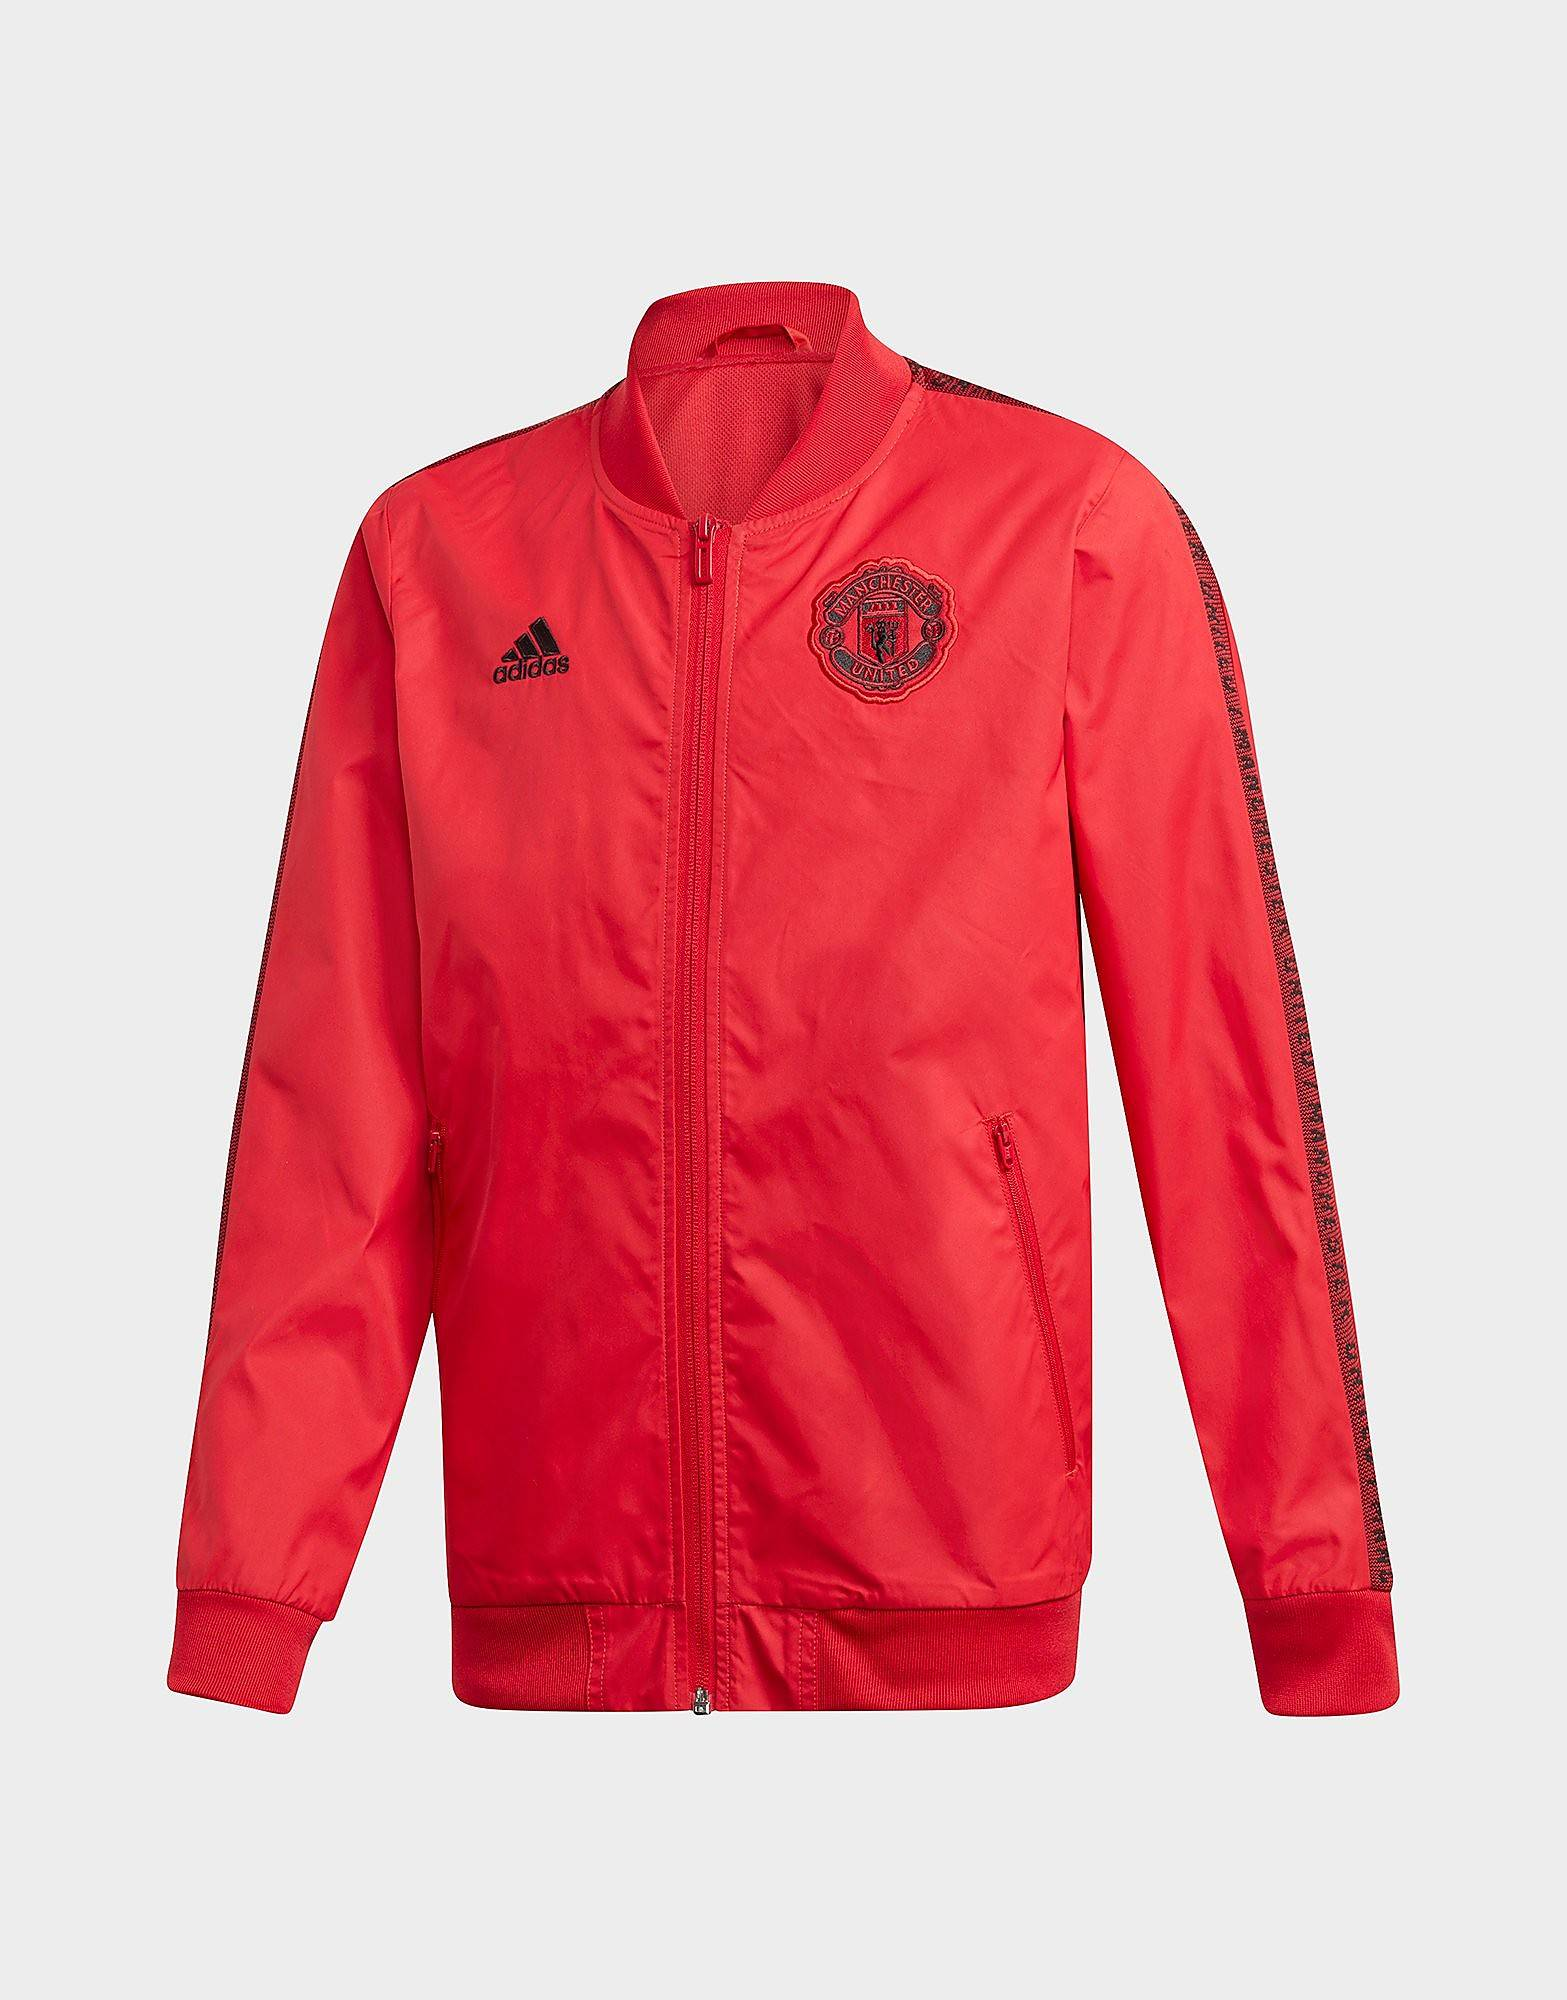 Image of Adidas Manchester United FC Anthem Takki Juniorit - Kids, Punainen